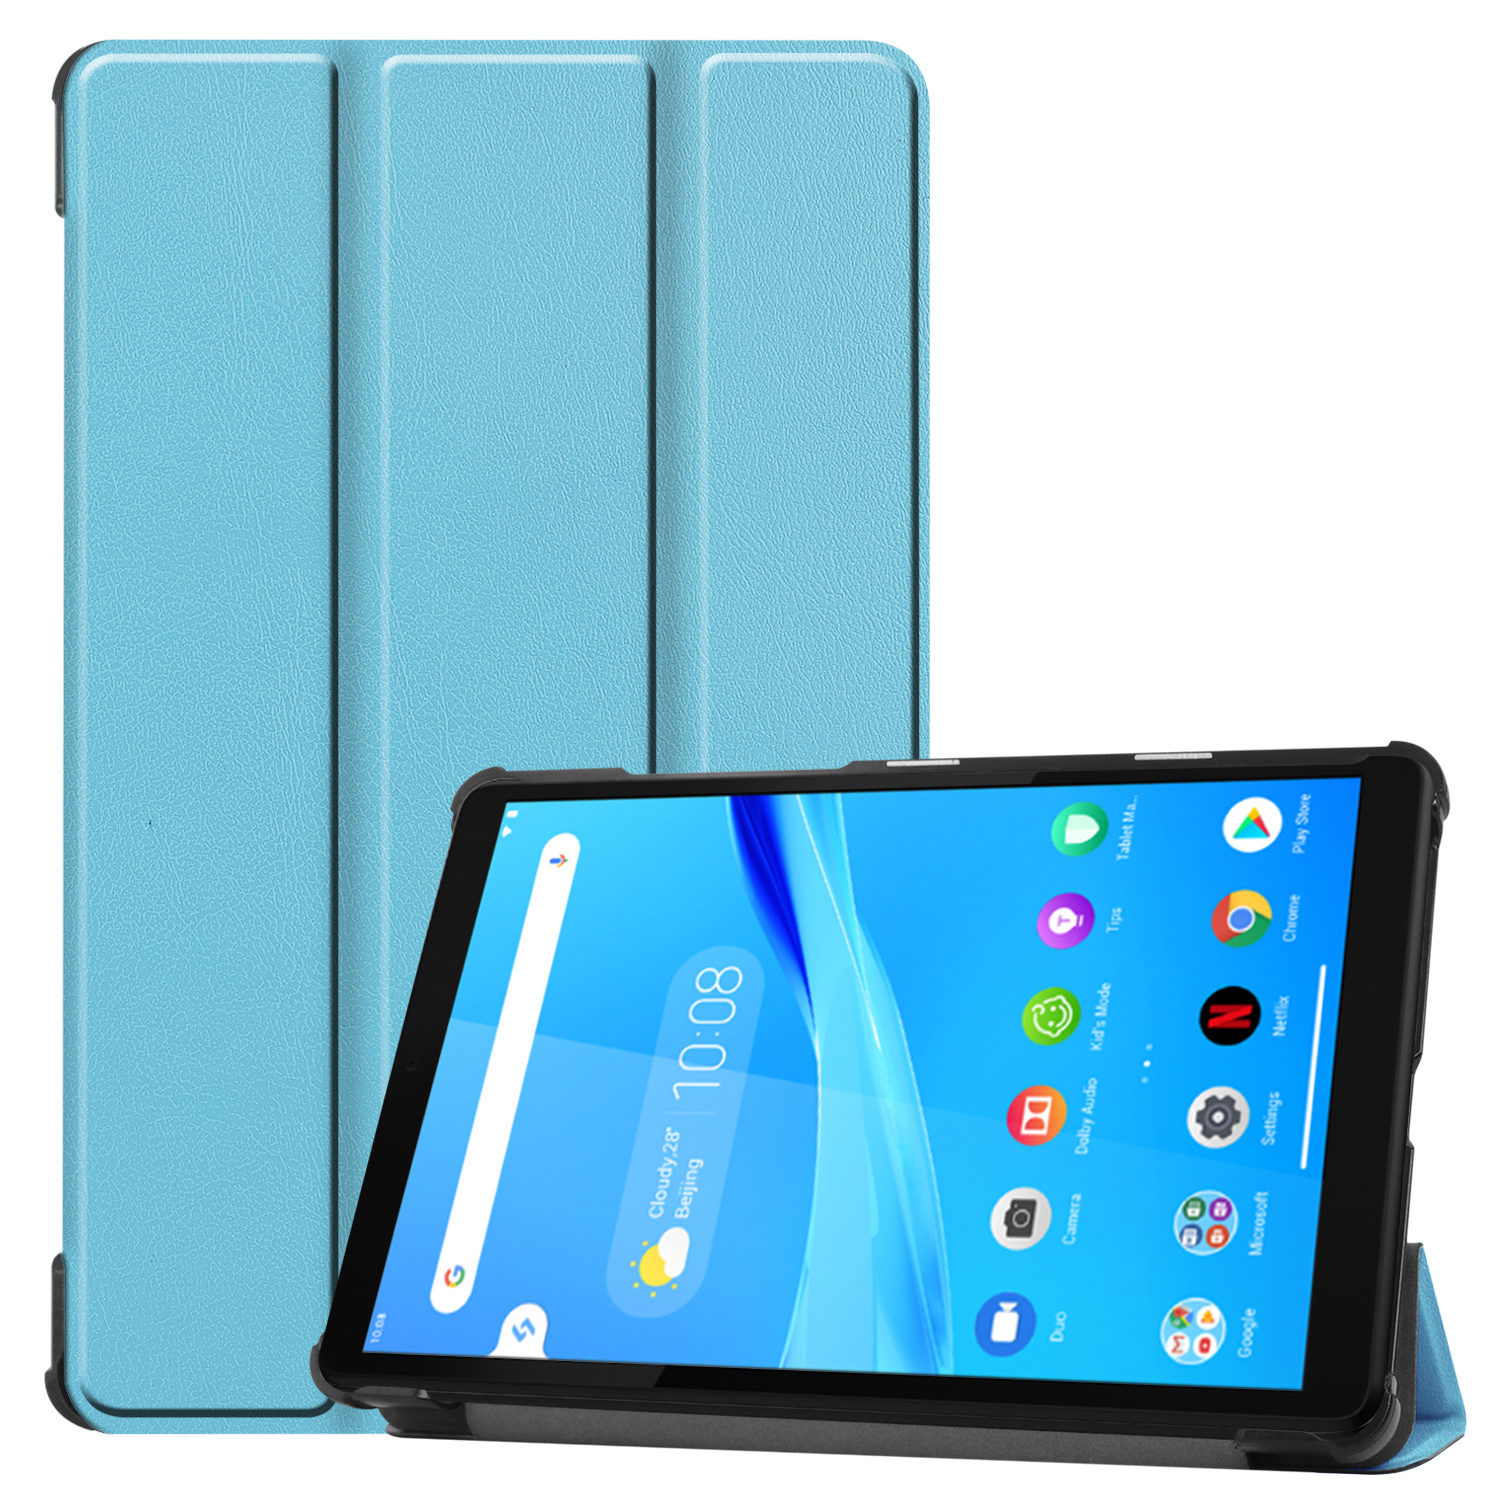 Lunso 3-Vouw sleepcover hoes Lichtblauw voor de Lenovo Tab M8